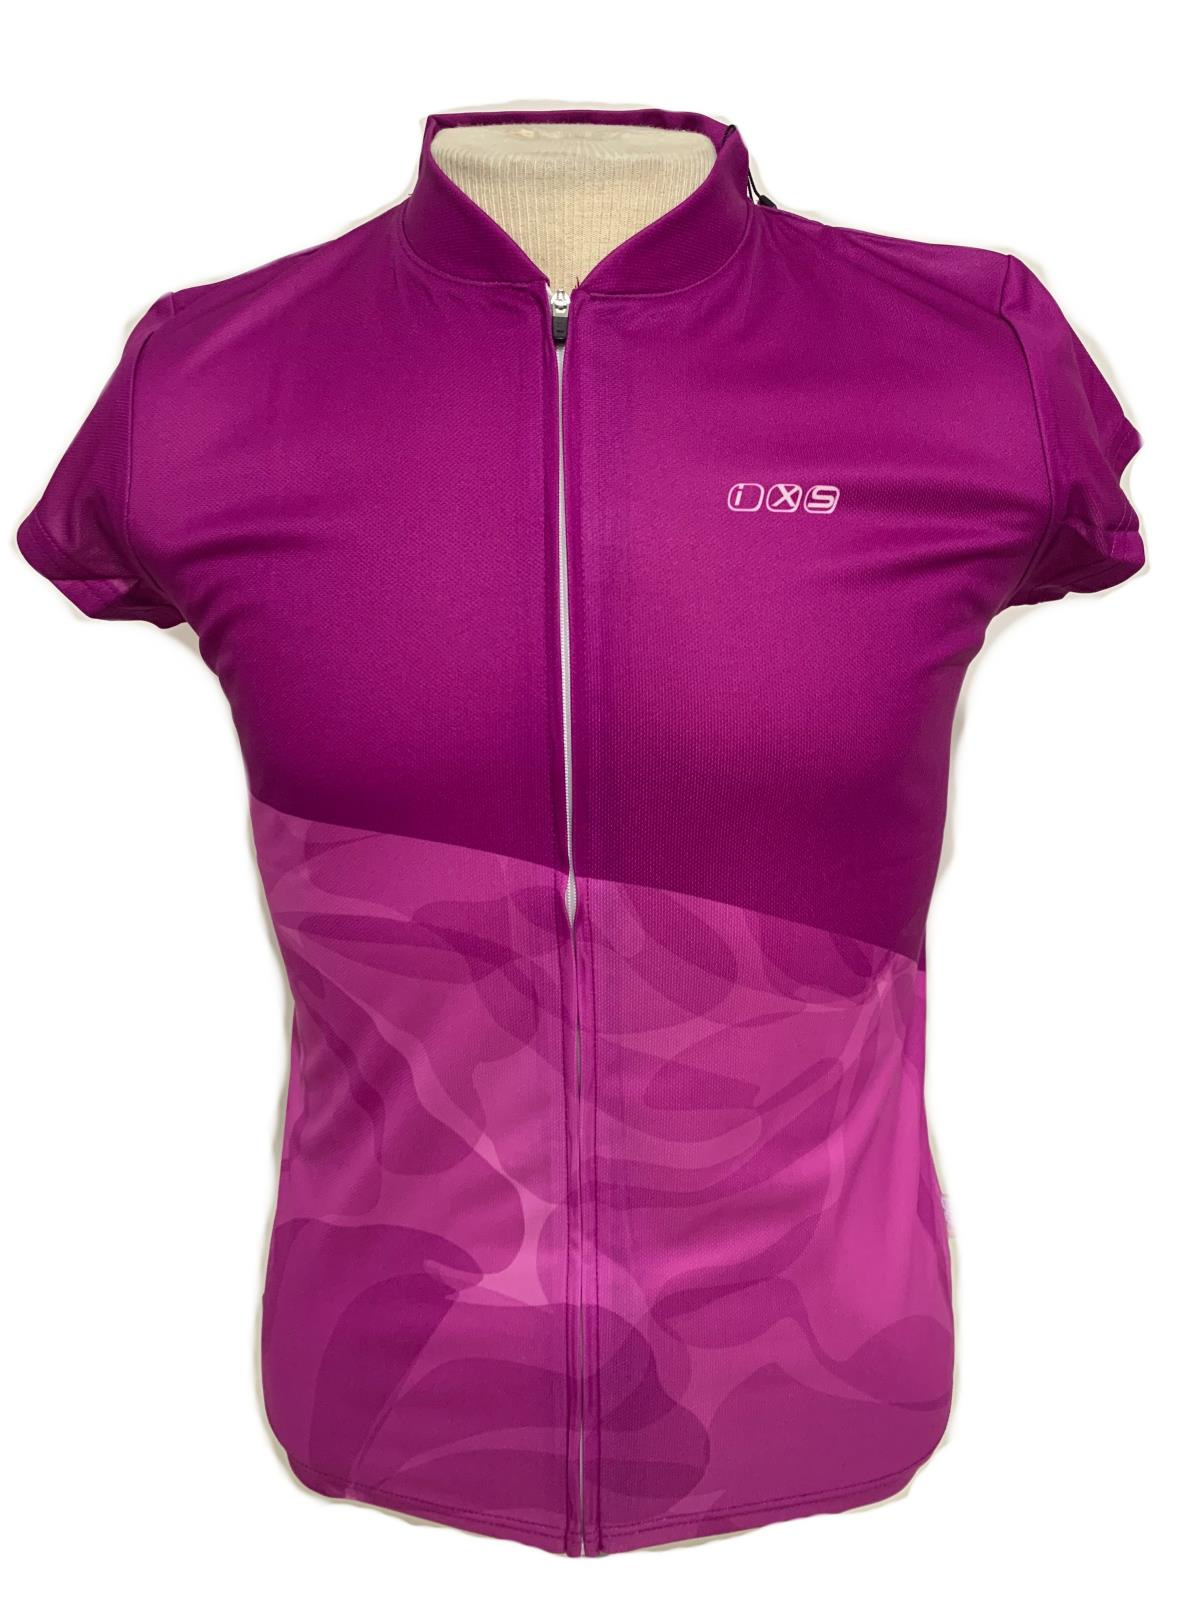 Details about  /iXS Amabel Women's Cycling Bike Bicycle Jersey Lime 40 Medium New